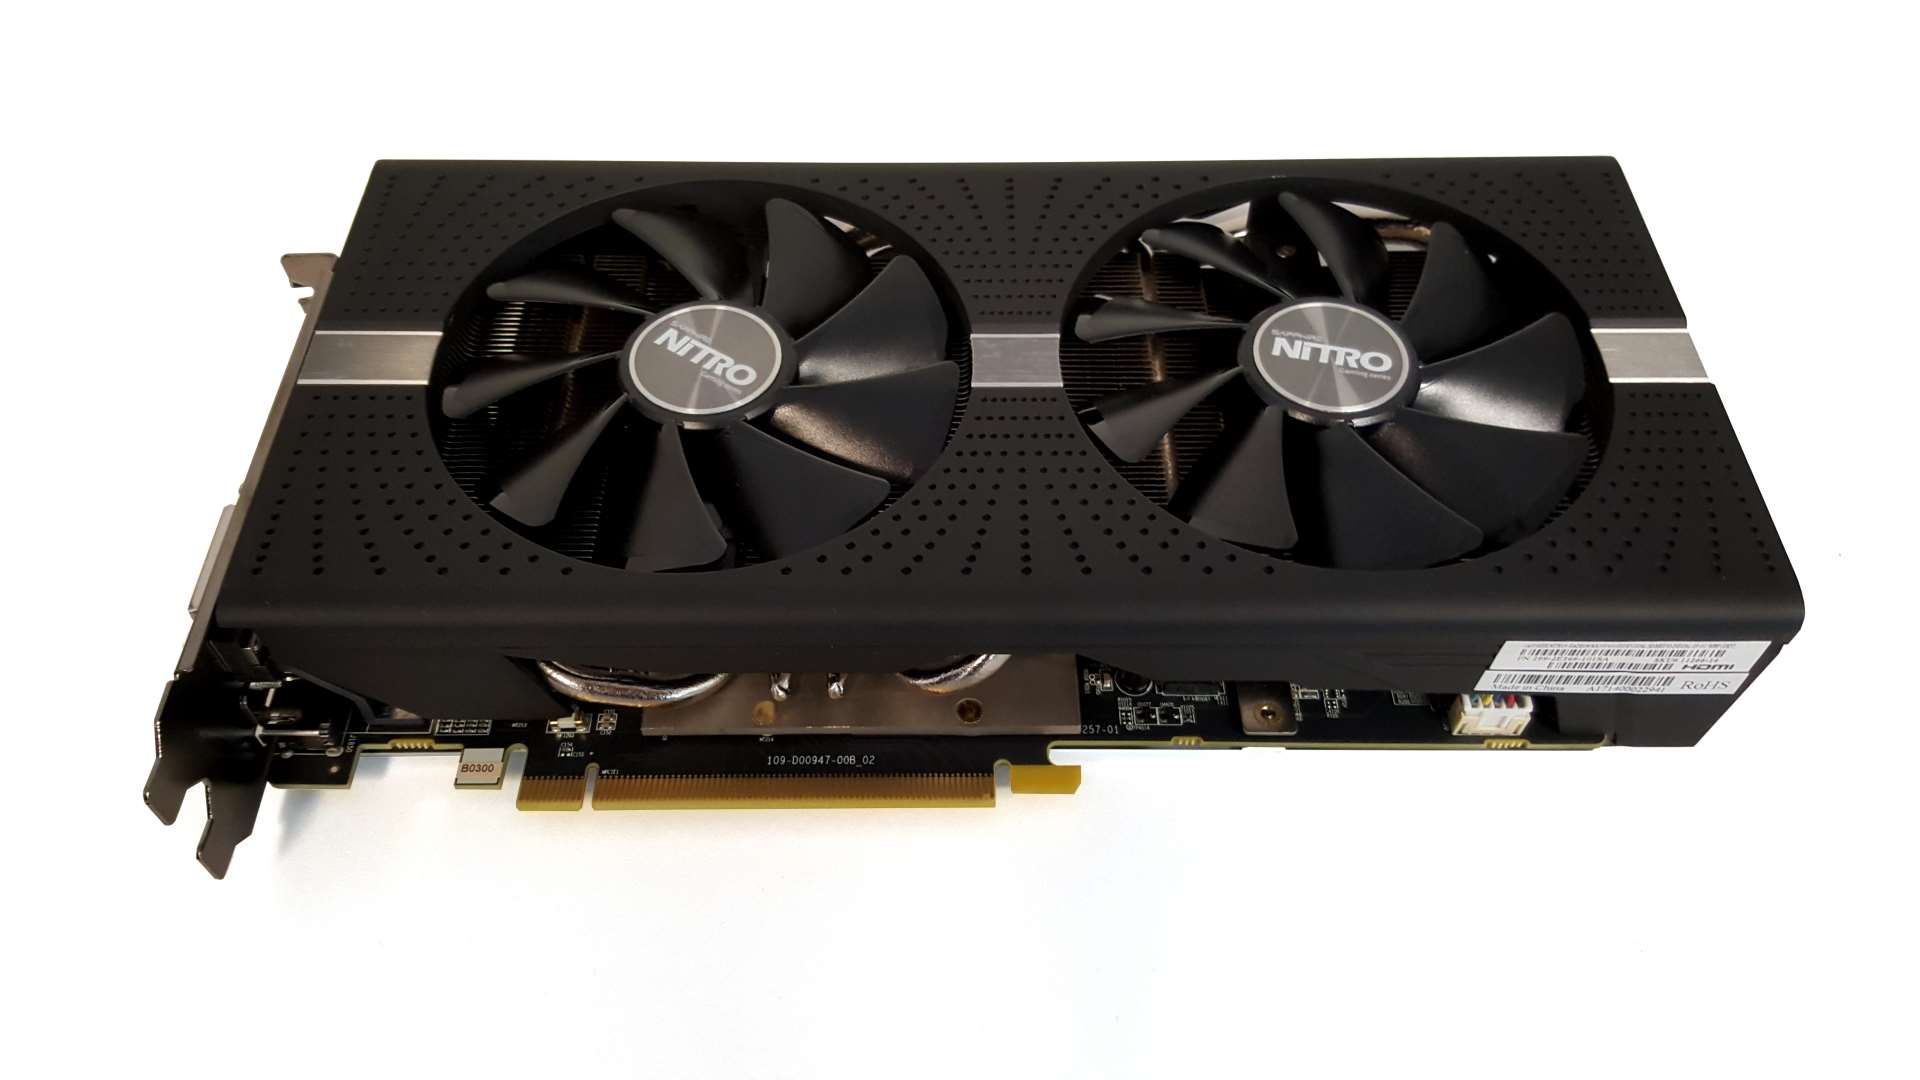 AMD RX 570 4GB review: the best budget graphics card around today